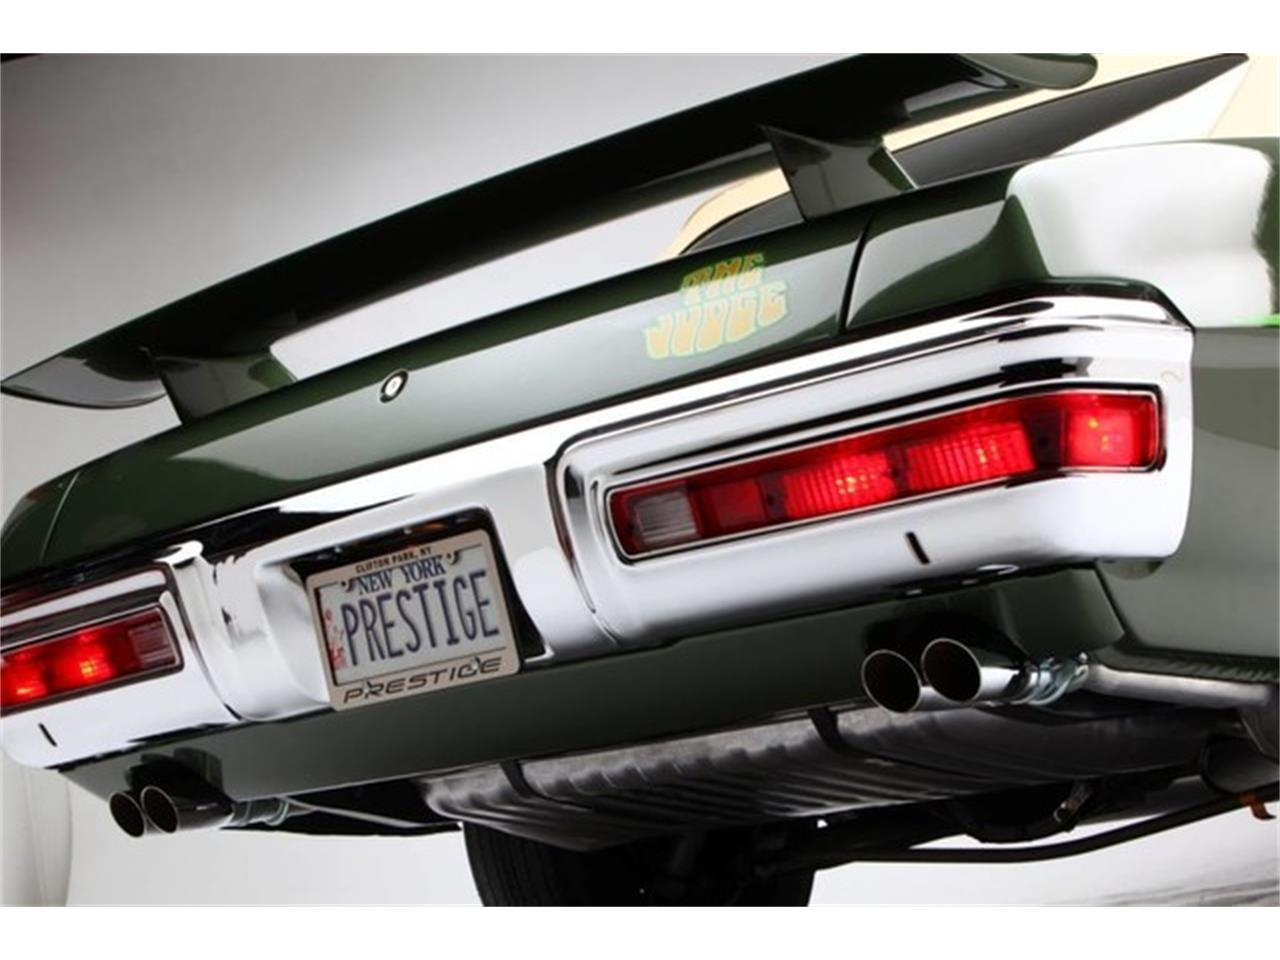 Large Picture of 1970 GTO (The Judge) - $219,000.00 Offered by Prestige Motor Car Co. - PU25